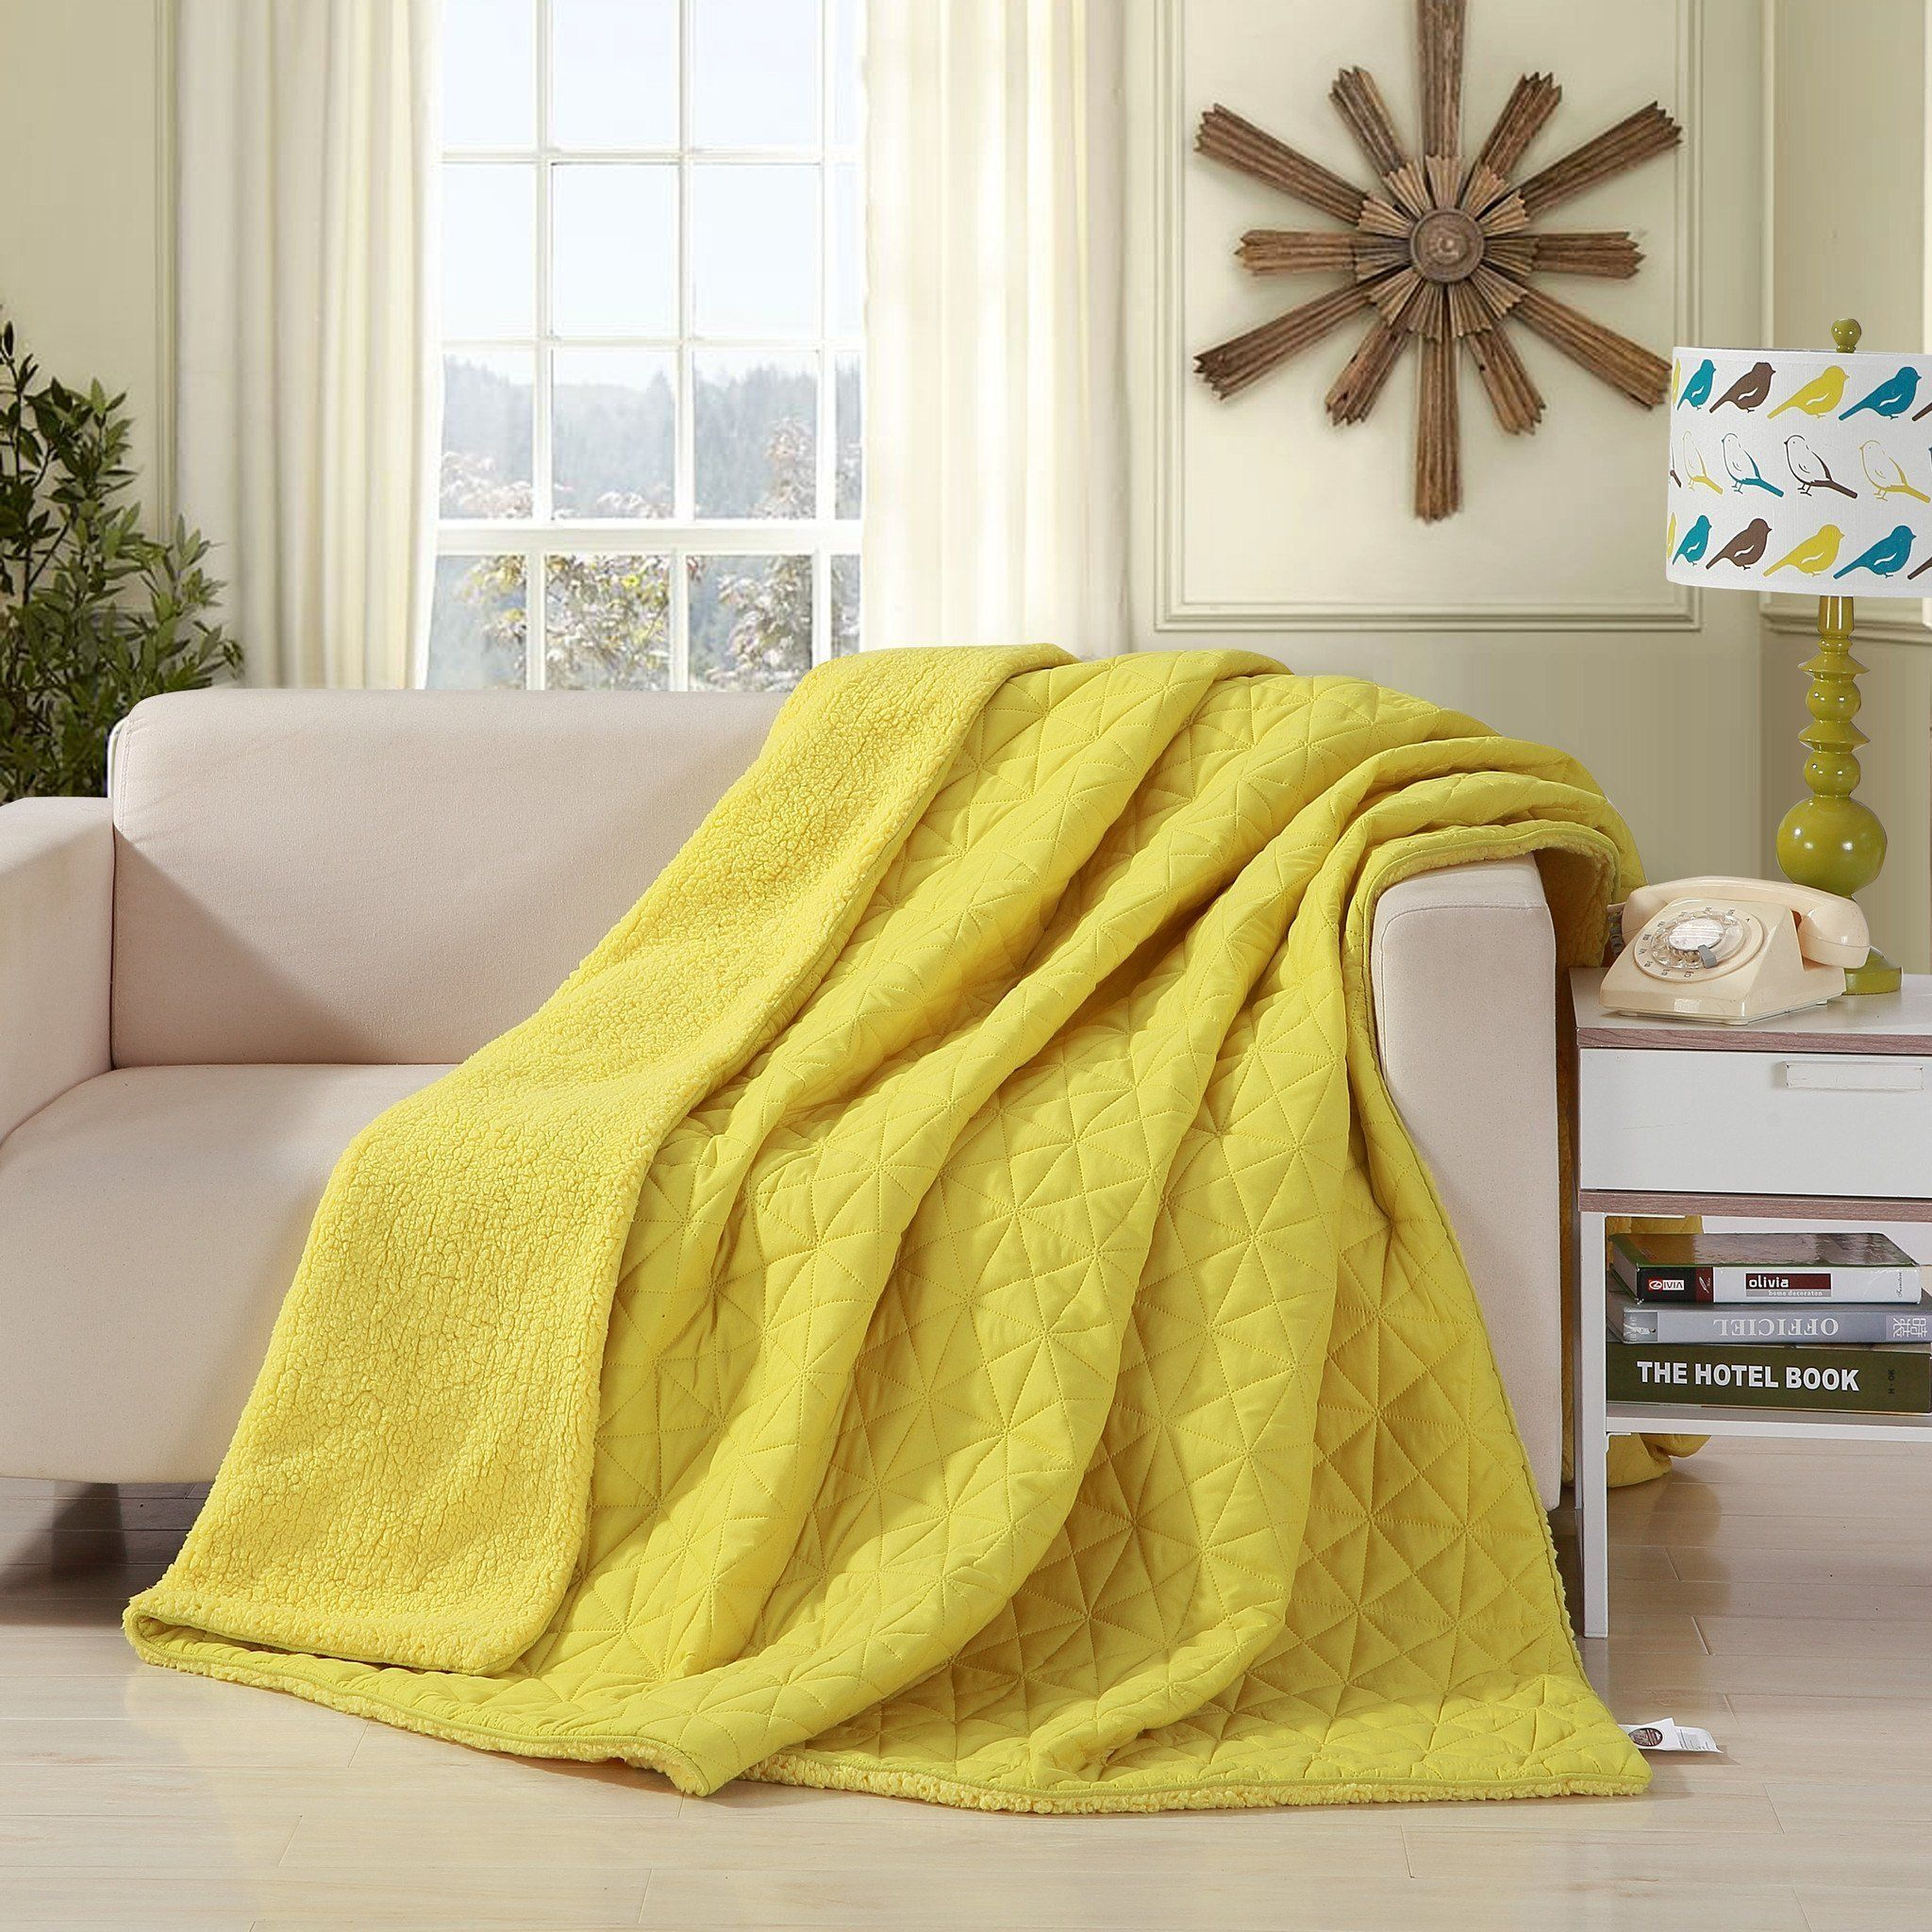 DaDa Bedding Tuscan Sun Solid Yellow Reversible Soft Stitched with ... : yellow quilted bedspread - Adamdwight.com